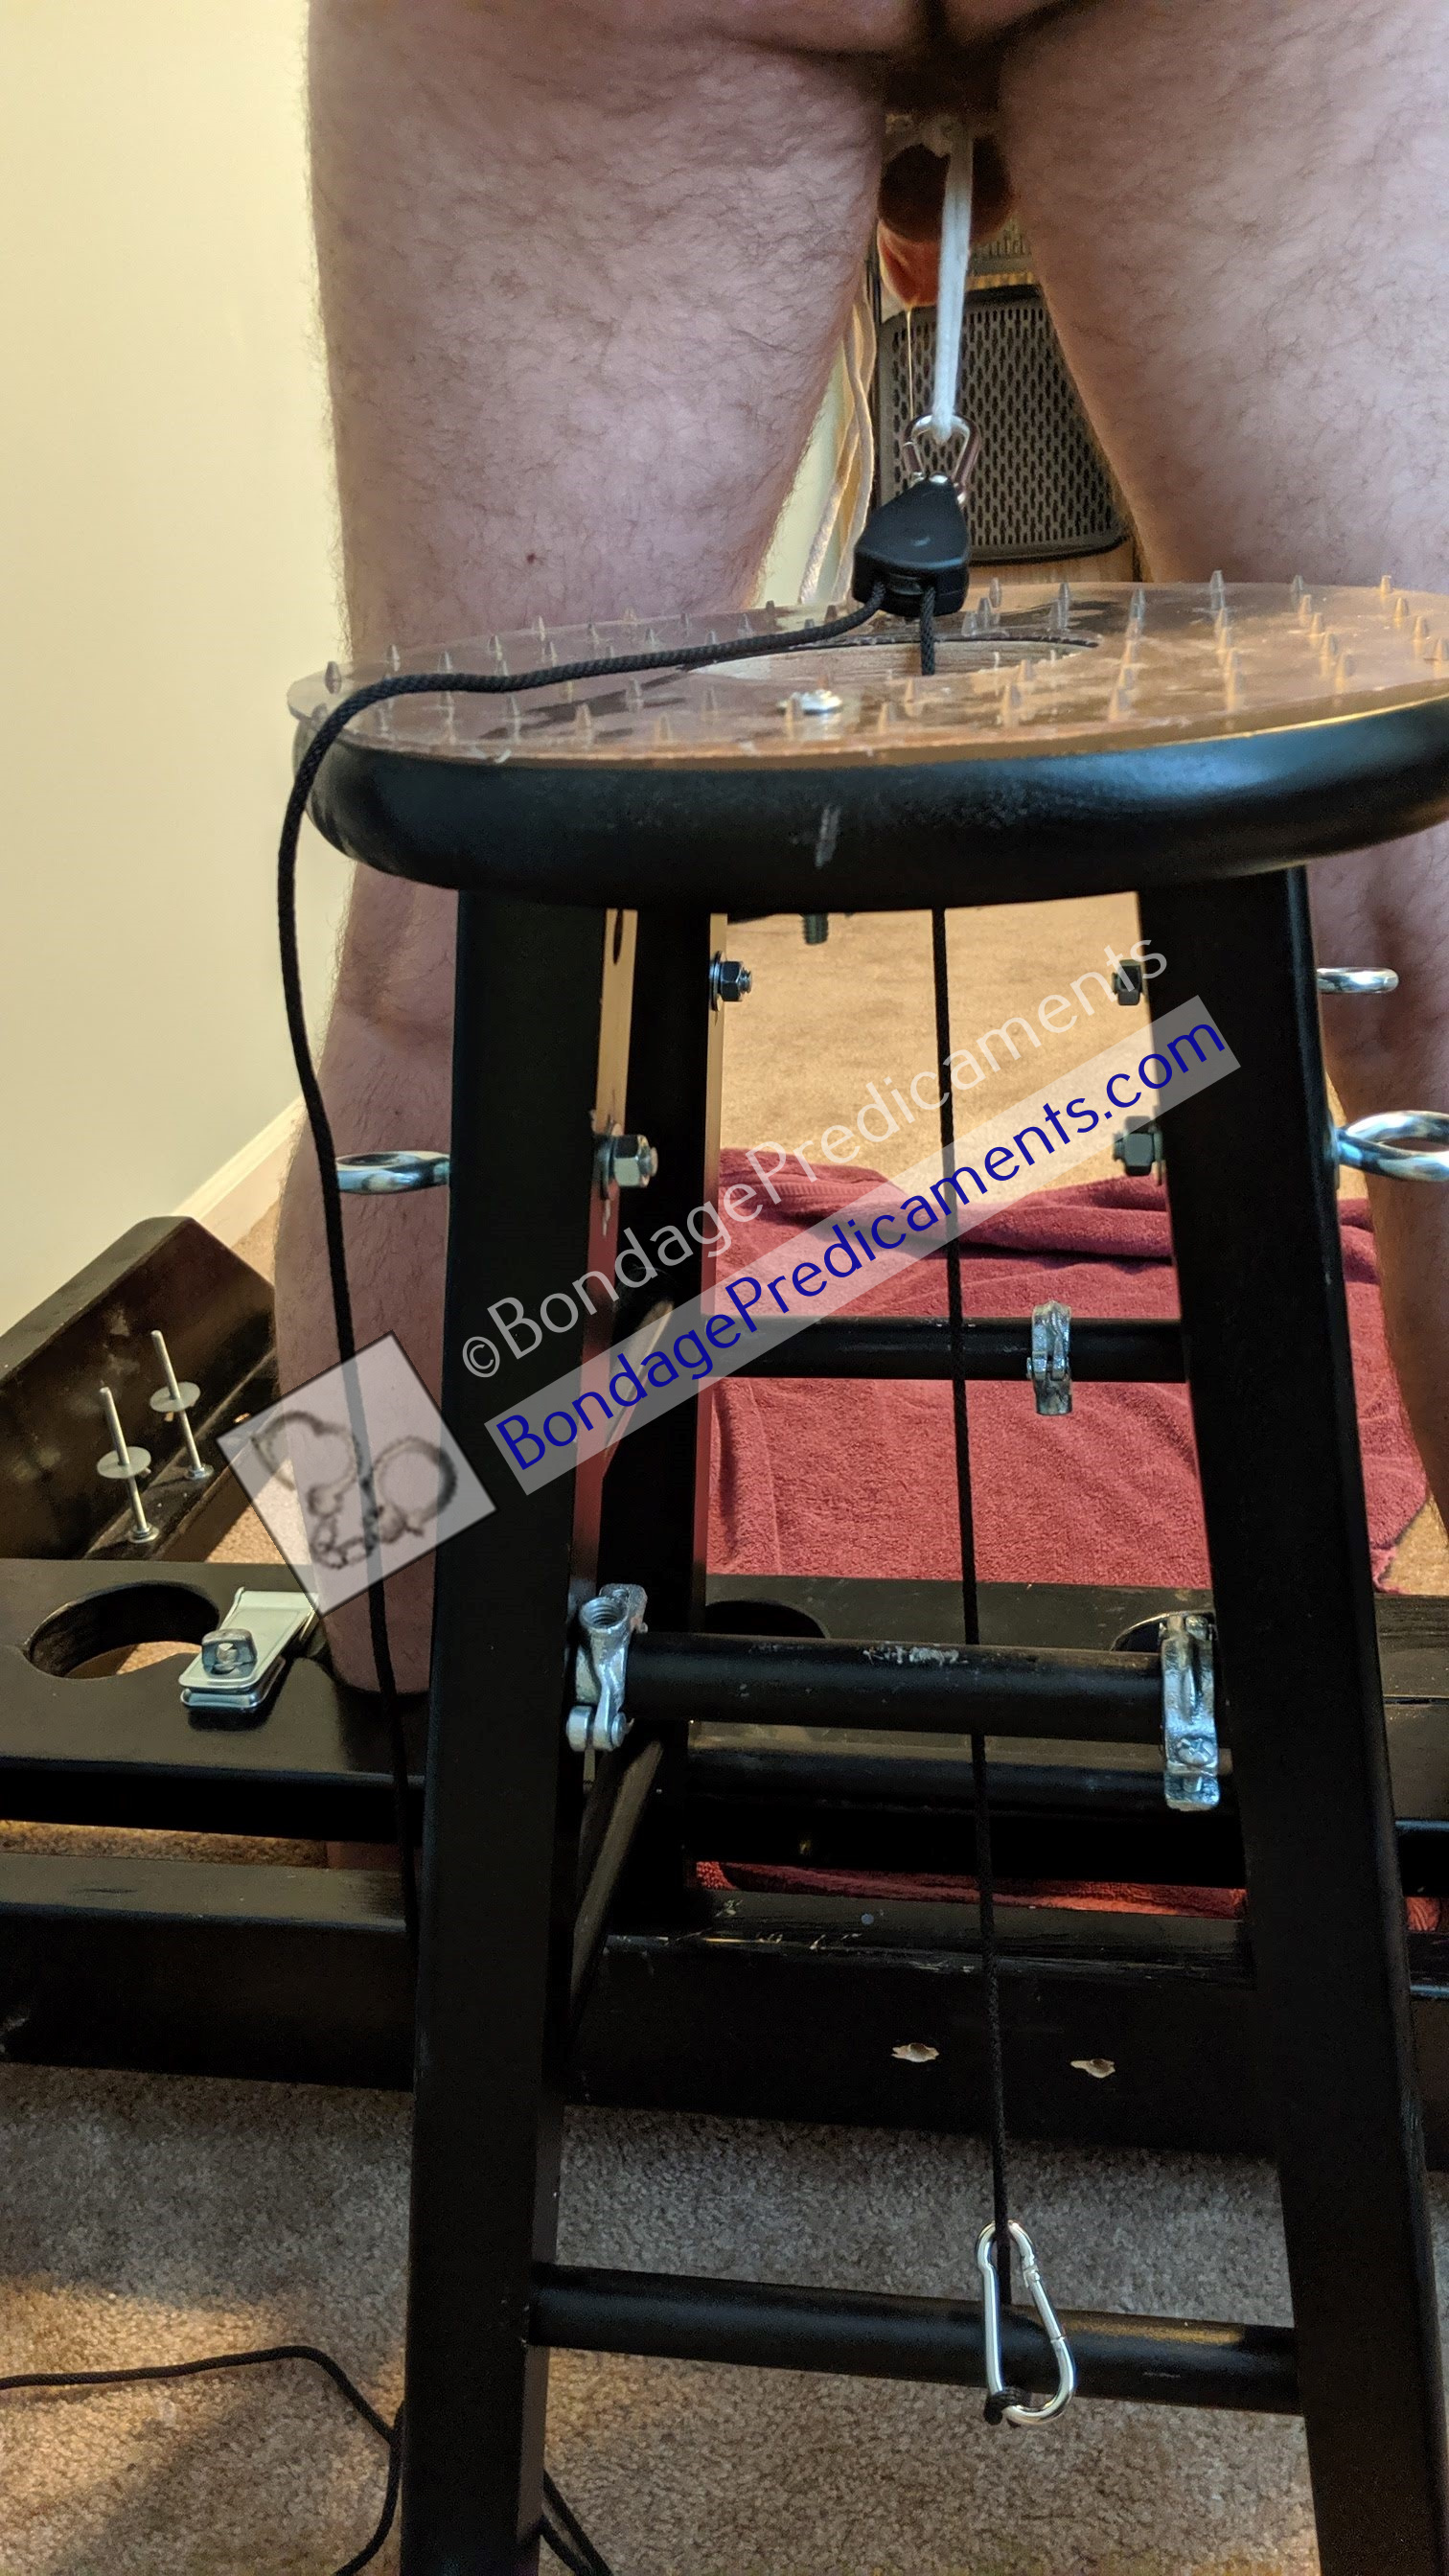 Gay Sub Spiked Bondage Stool